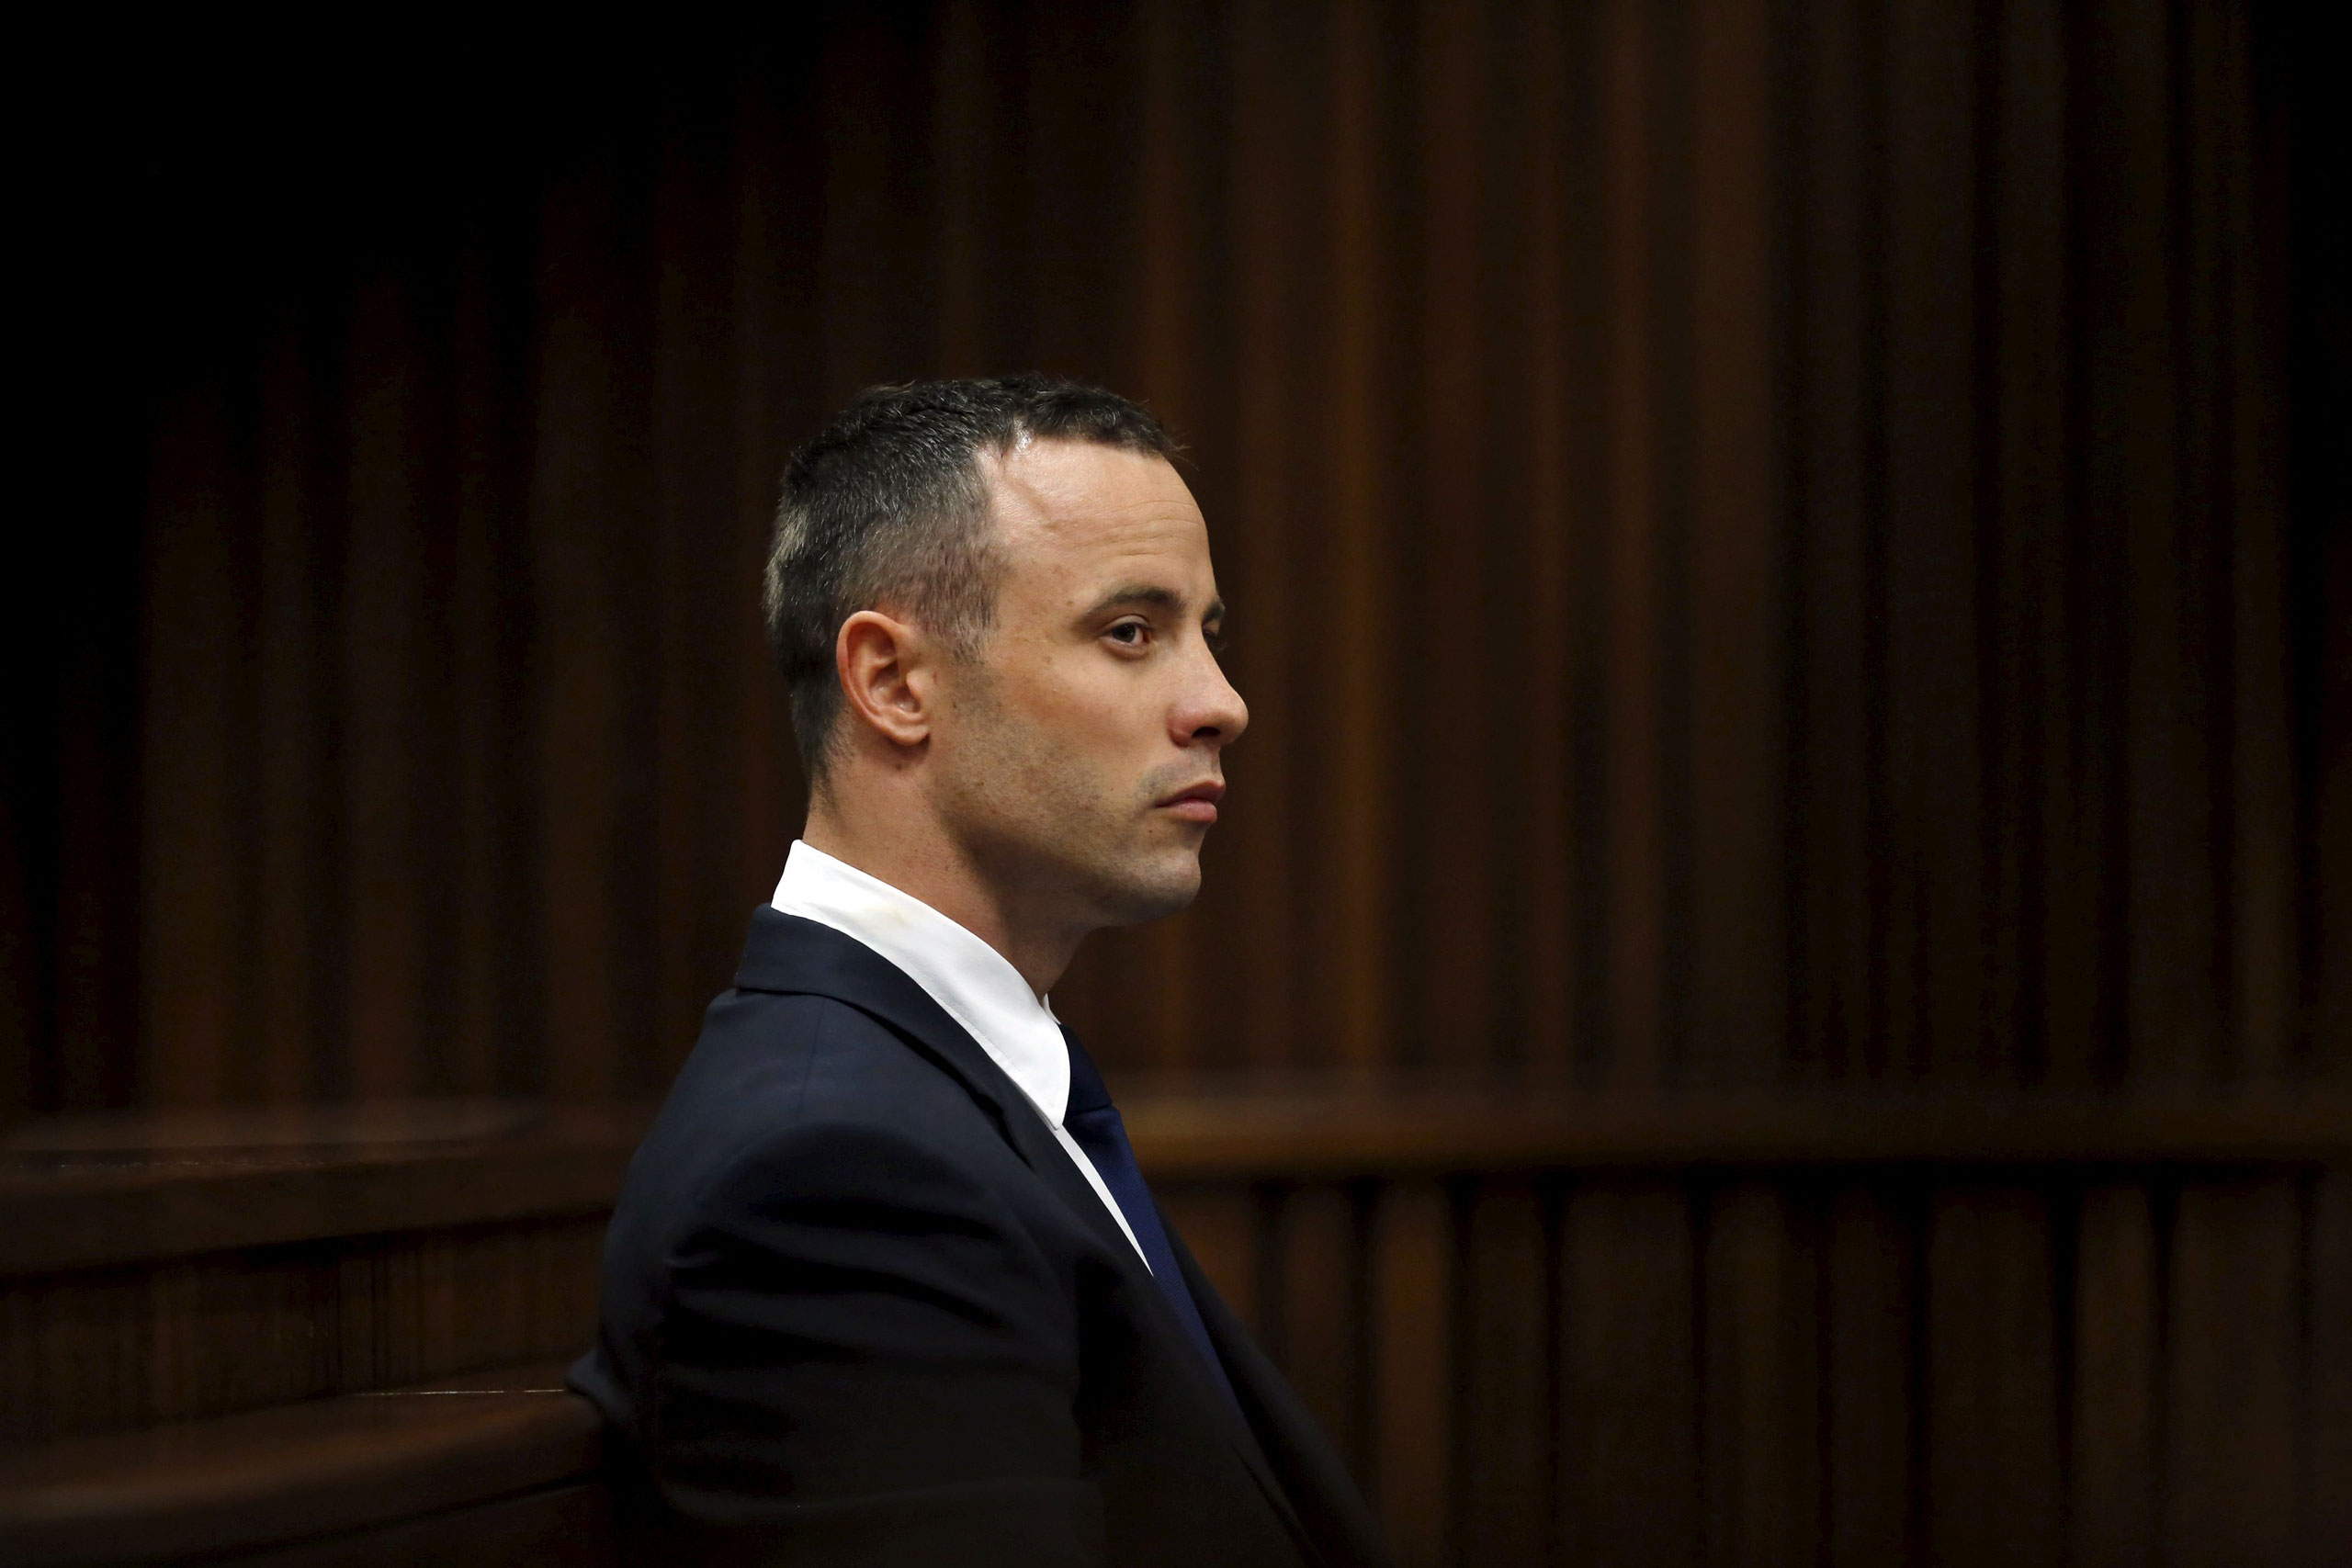 Oscar Pistorius  sits in the dock during his trial in the North Gauteng High Court in Pretoria, on May 6, 2014.